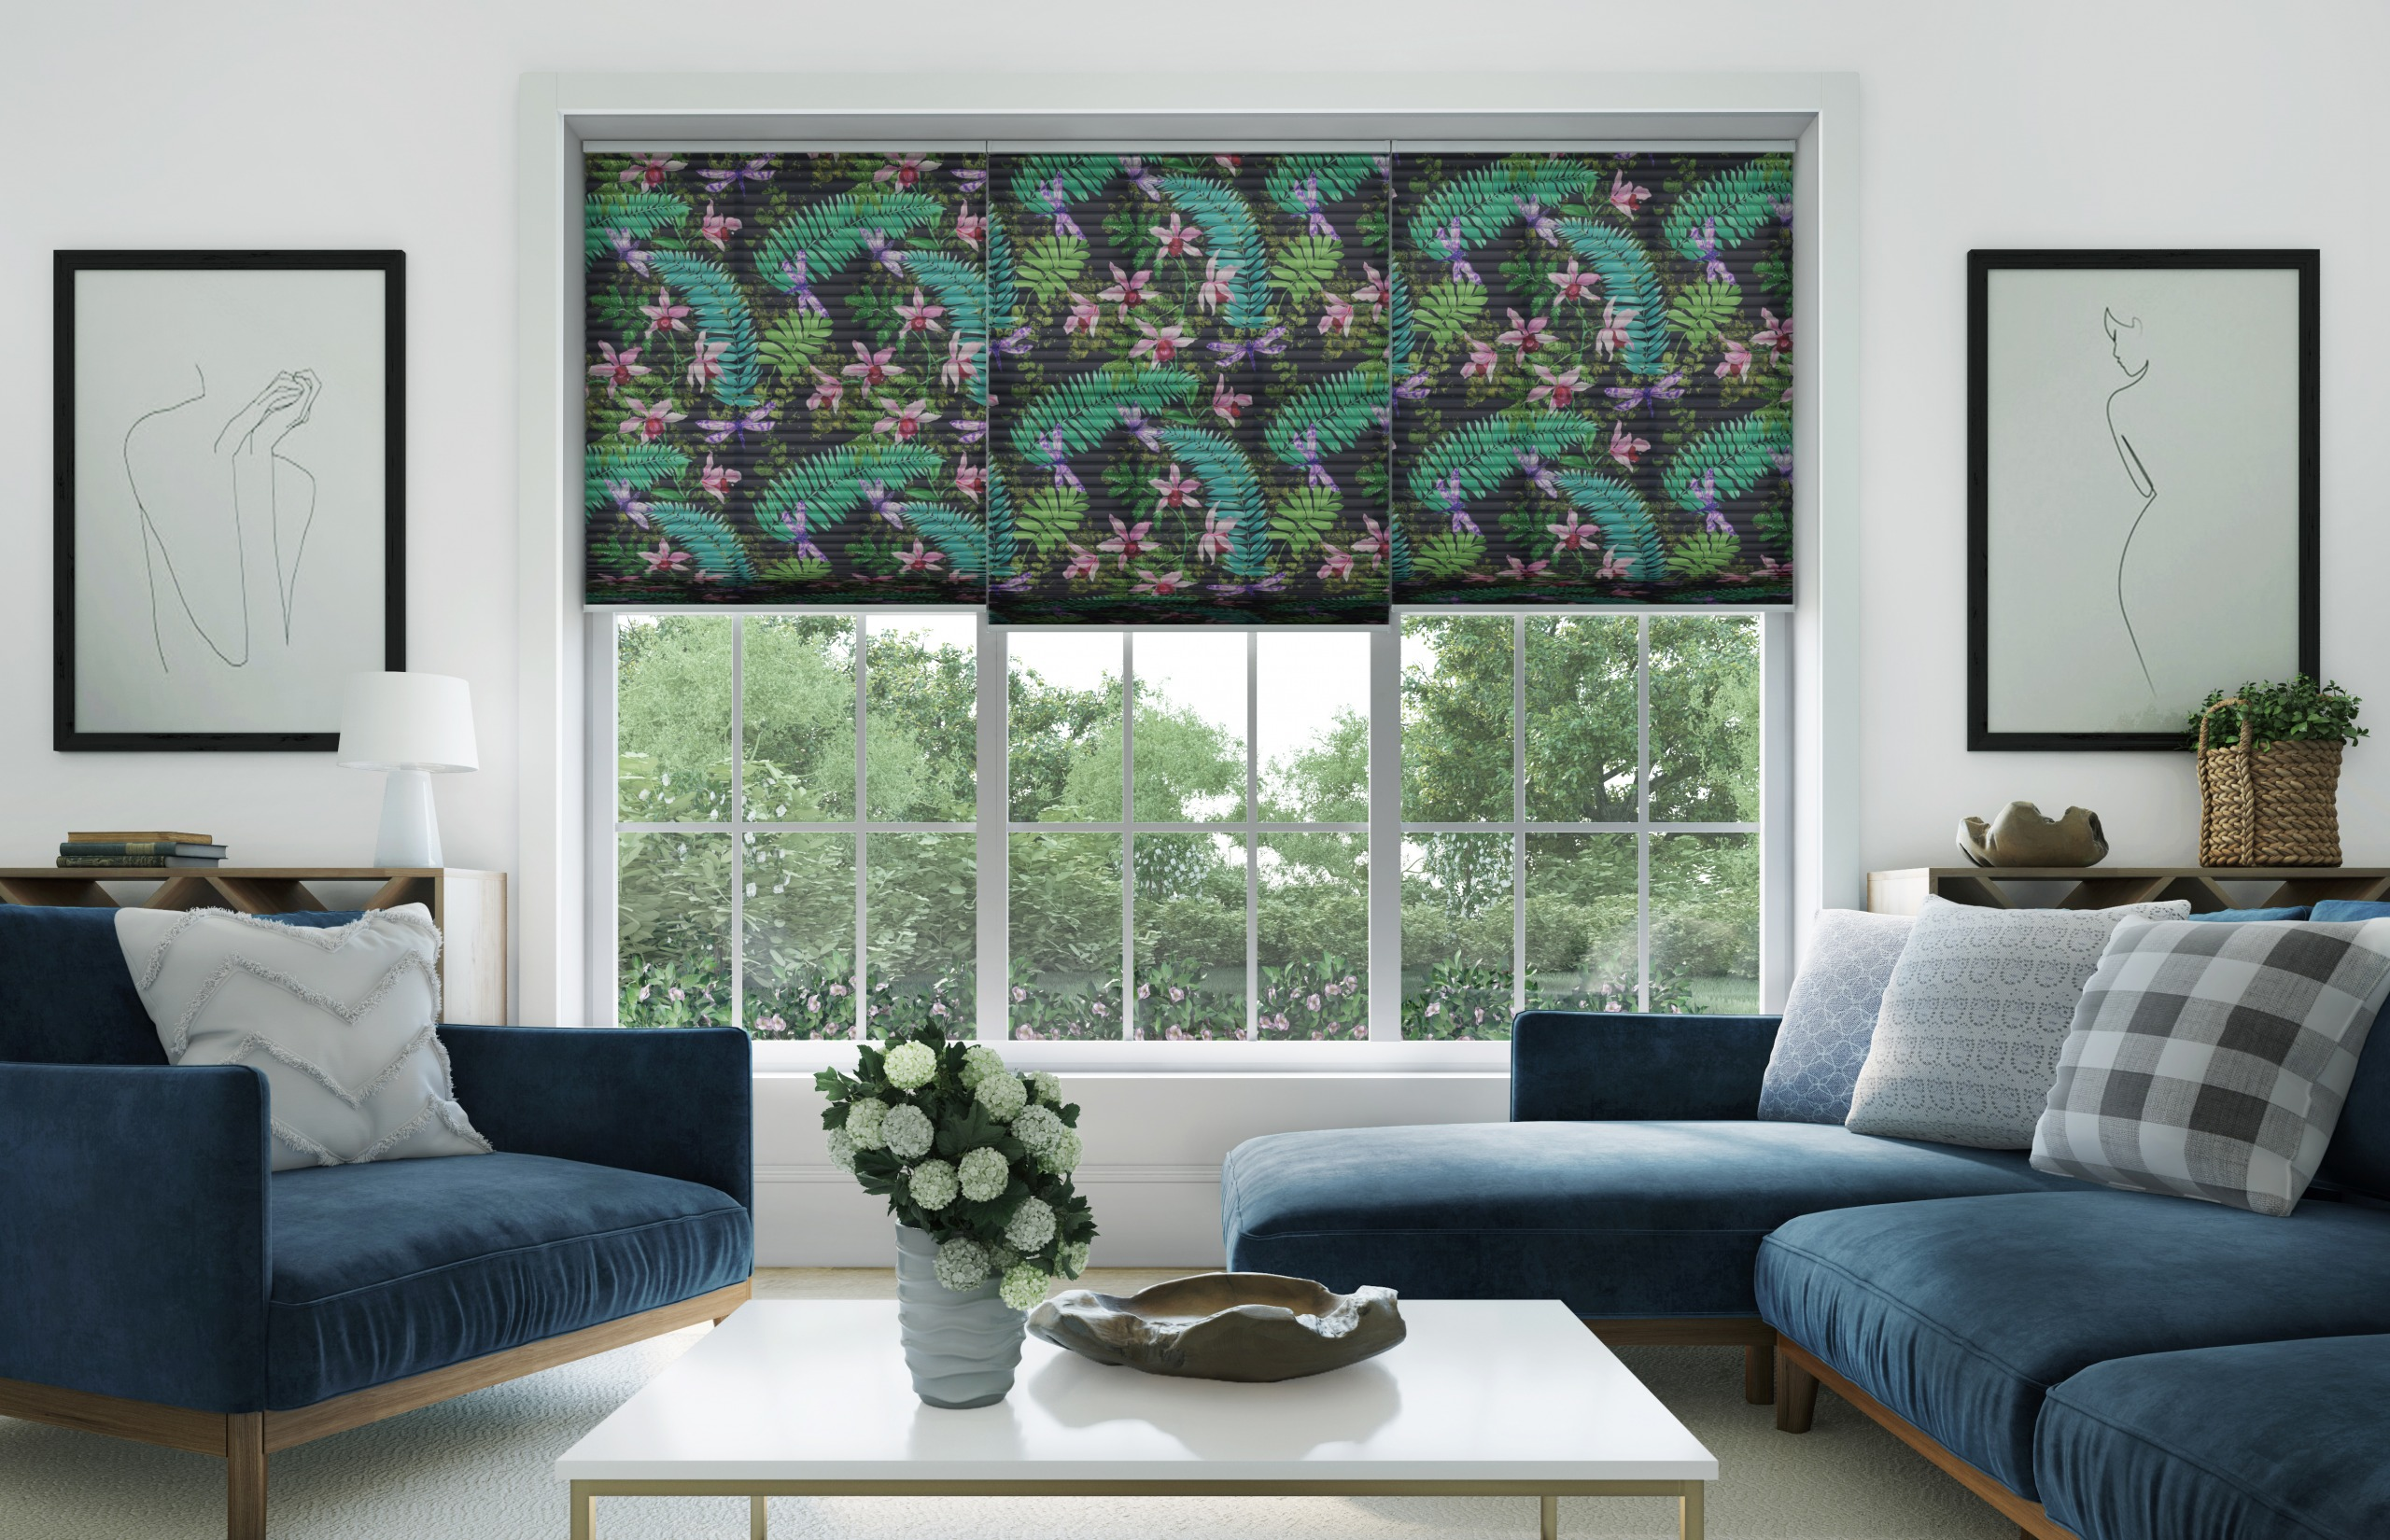 INTRODUCING OUR NEW PLEATED BLIND COLLECTION